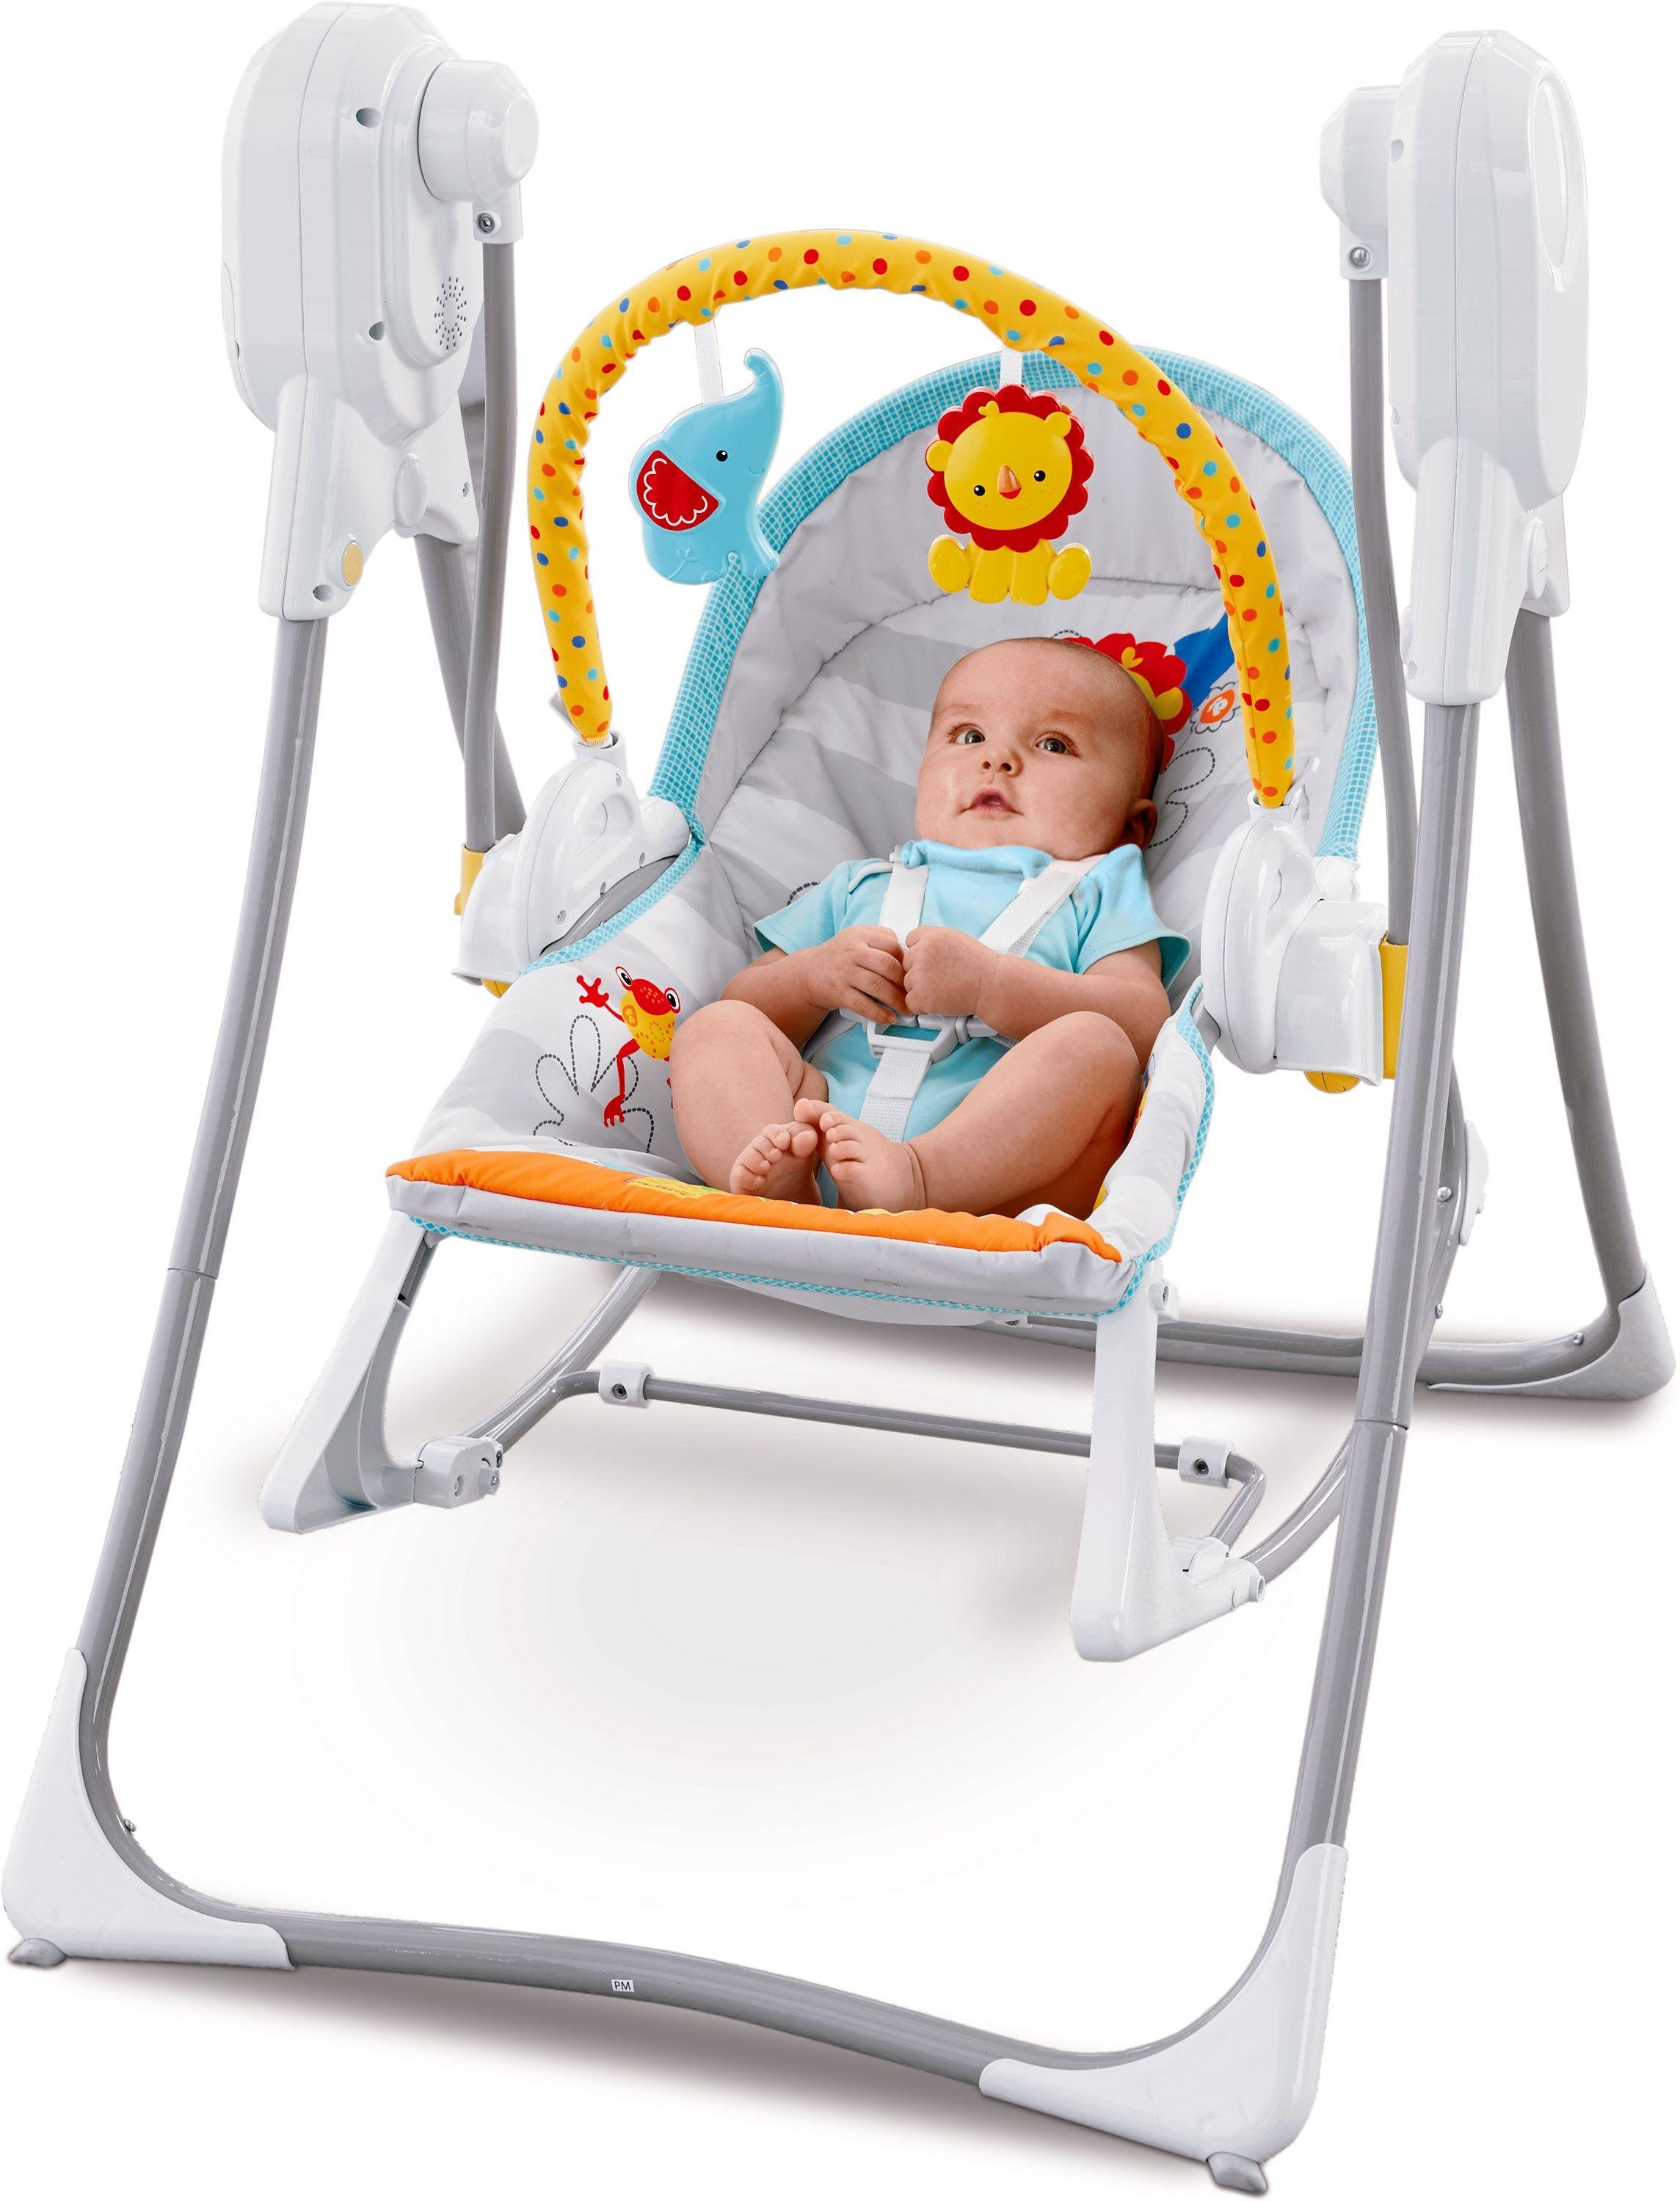 toys r us rocking chair canada wooden glider 746775309190 upc fisher price 3 in 1 swing n rocker